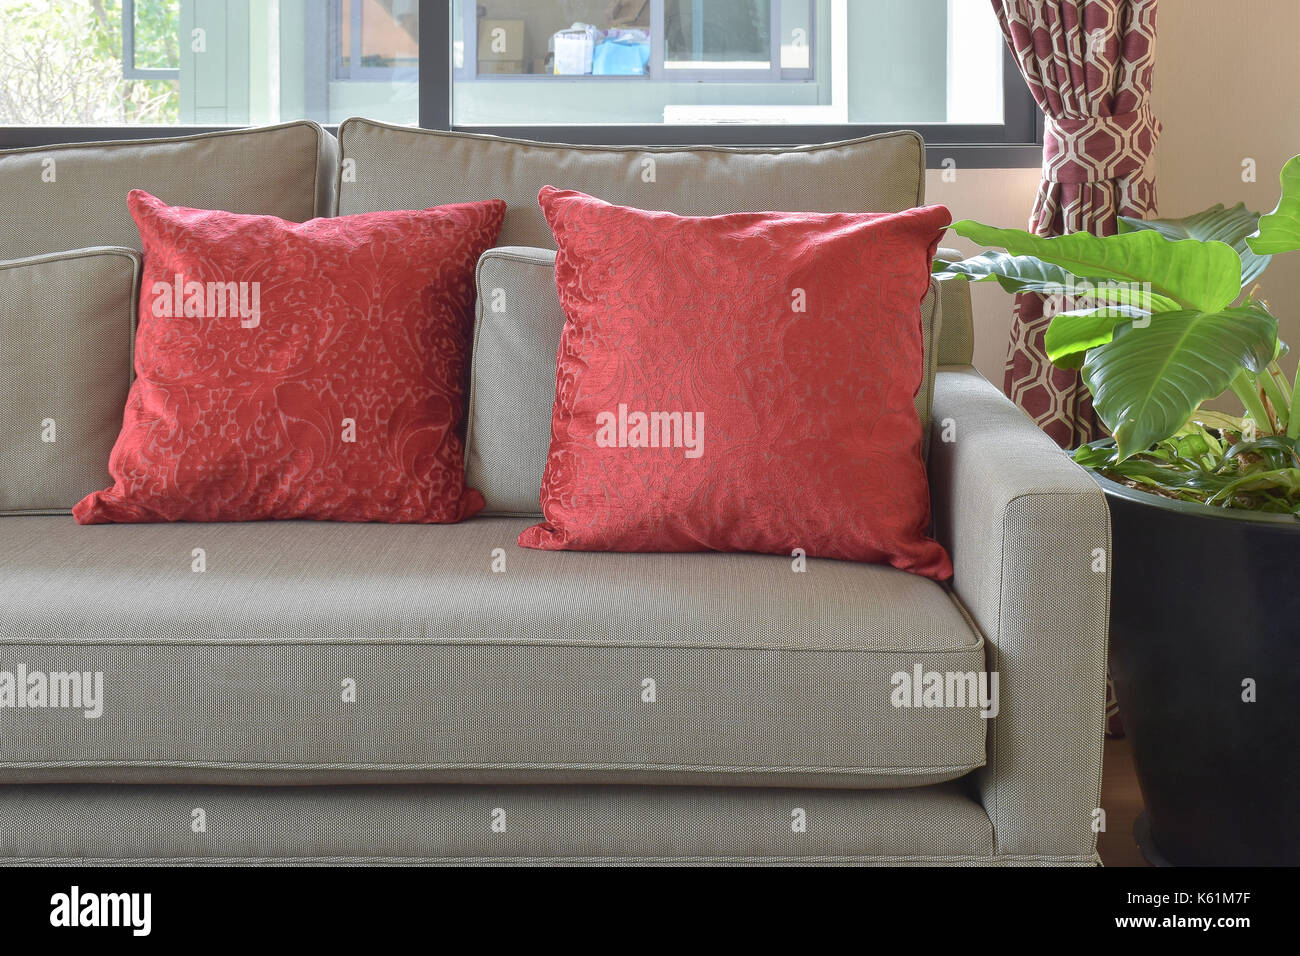 Enjoyable Red Pillows On Brown Sofa In Living Area At Home Stock Photo Andrewgaddart Wooden Chair Designs For Living Room Andrewgaddartcom